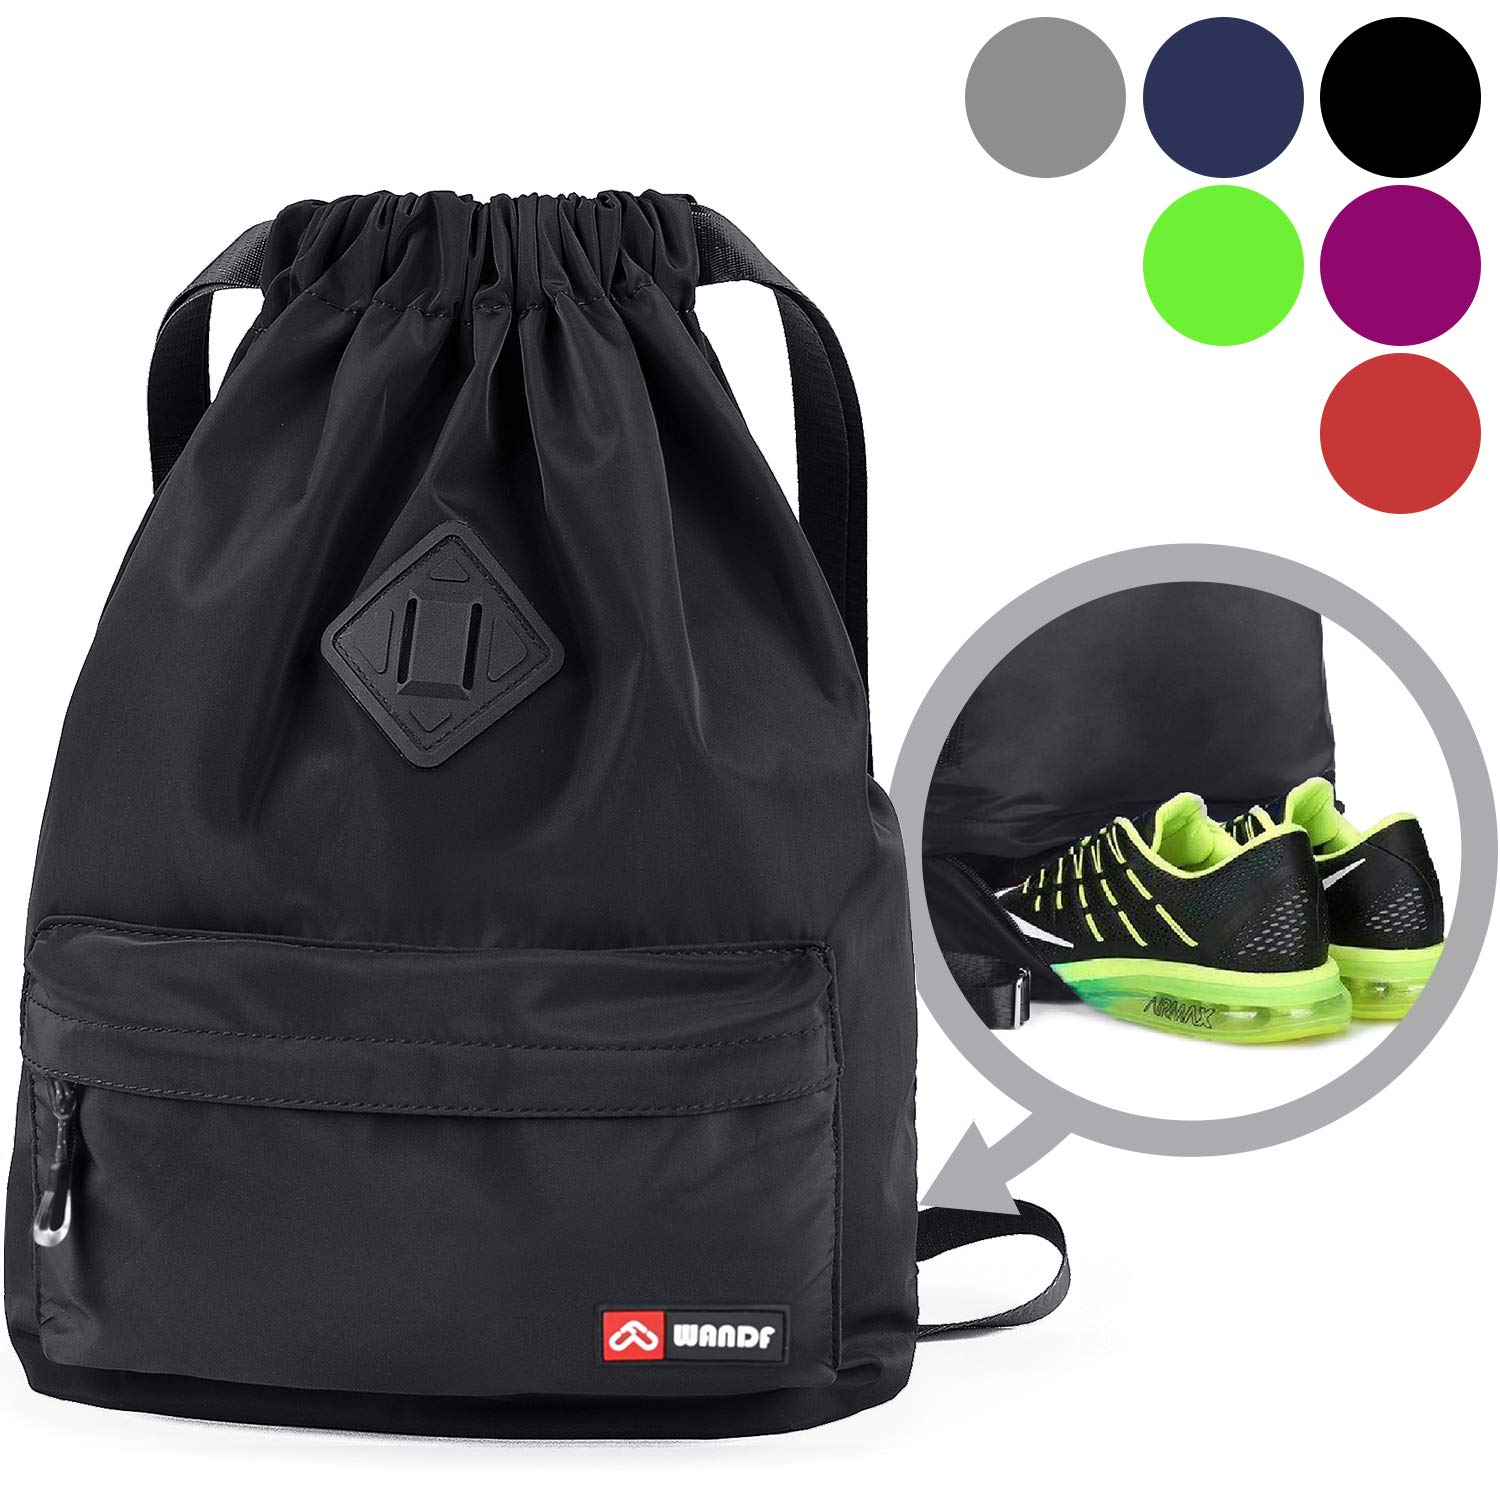 Drawstring Backpack with Shoe Compartment, Gym Sackpack Cinch Water Resistant Nylon Bag for Shopping Sport Yoga by WANDF (Black)